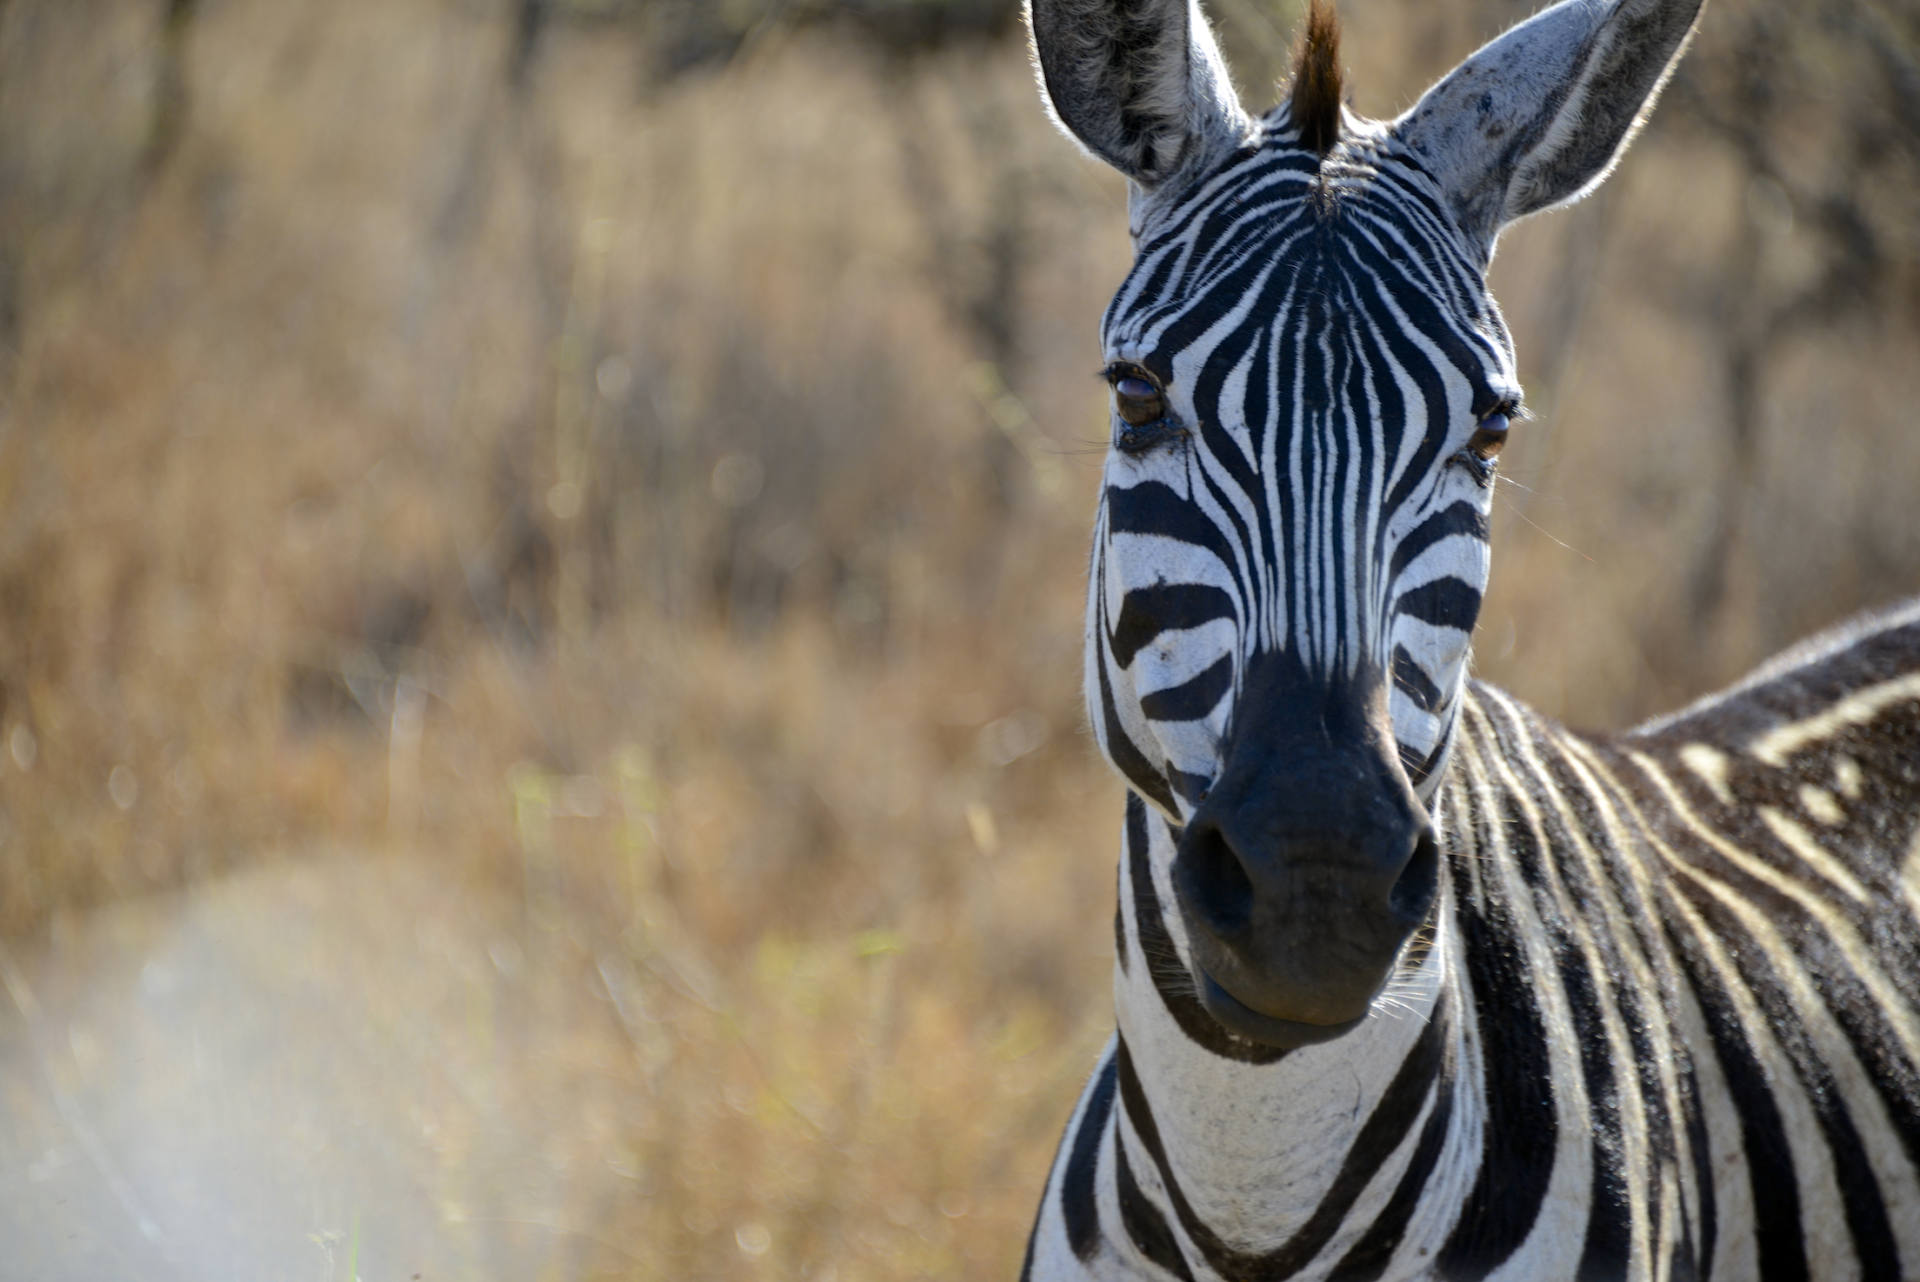 Africa: Kenya: A Zebra pauses to eat in Nairobi National Park